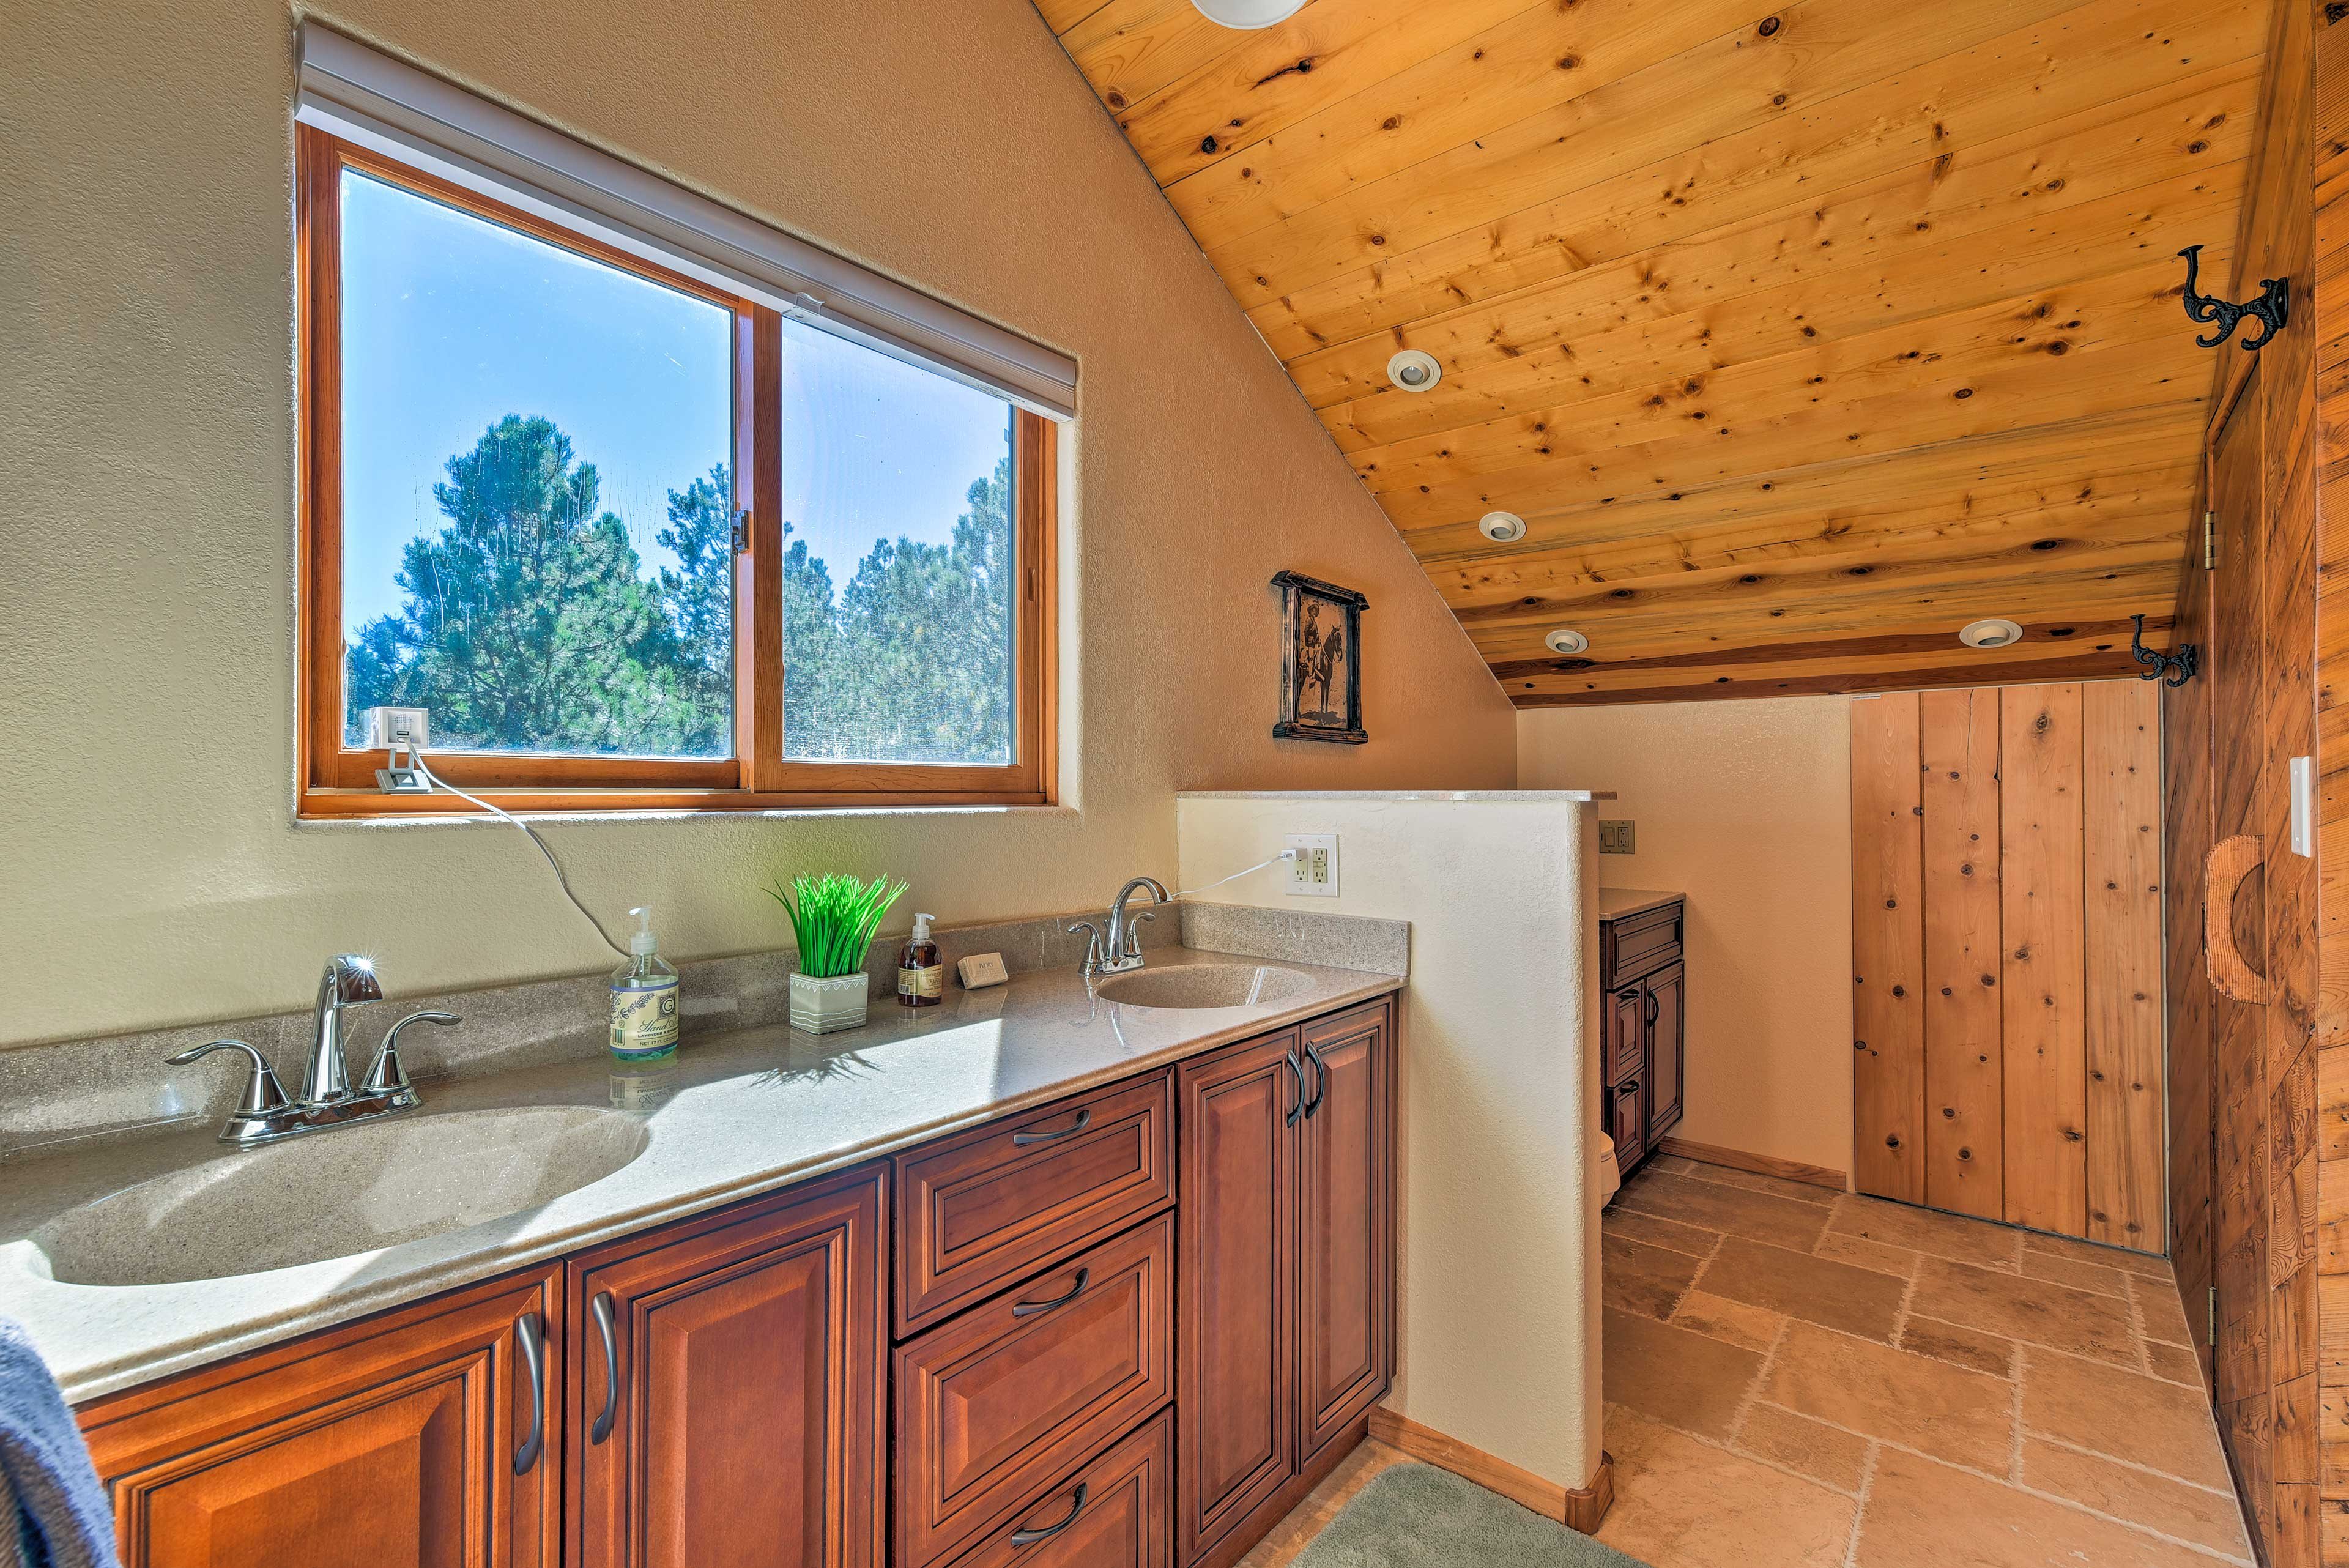 The master bathroom boasts a spacious shower and double sinks.